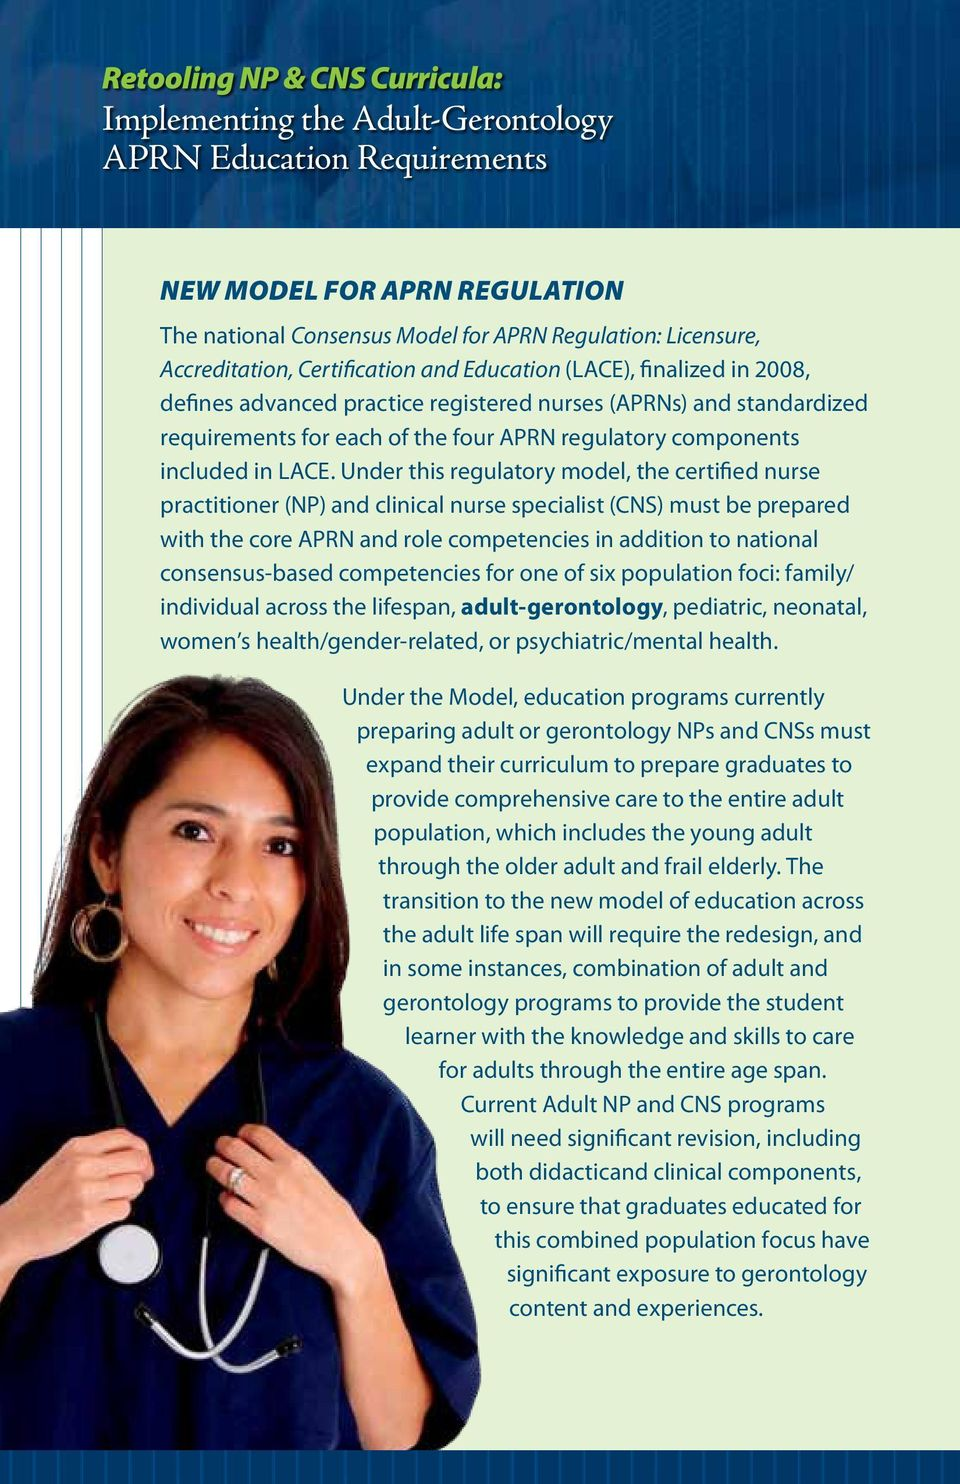 LACE. Under this regulatory model, the certified nurse practitioner (NP) and clinical nurse specialist (CNS) must be prepared with the core APRN and role competencies in addition to national